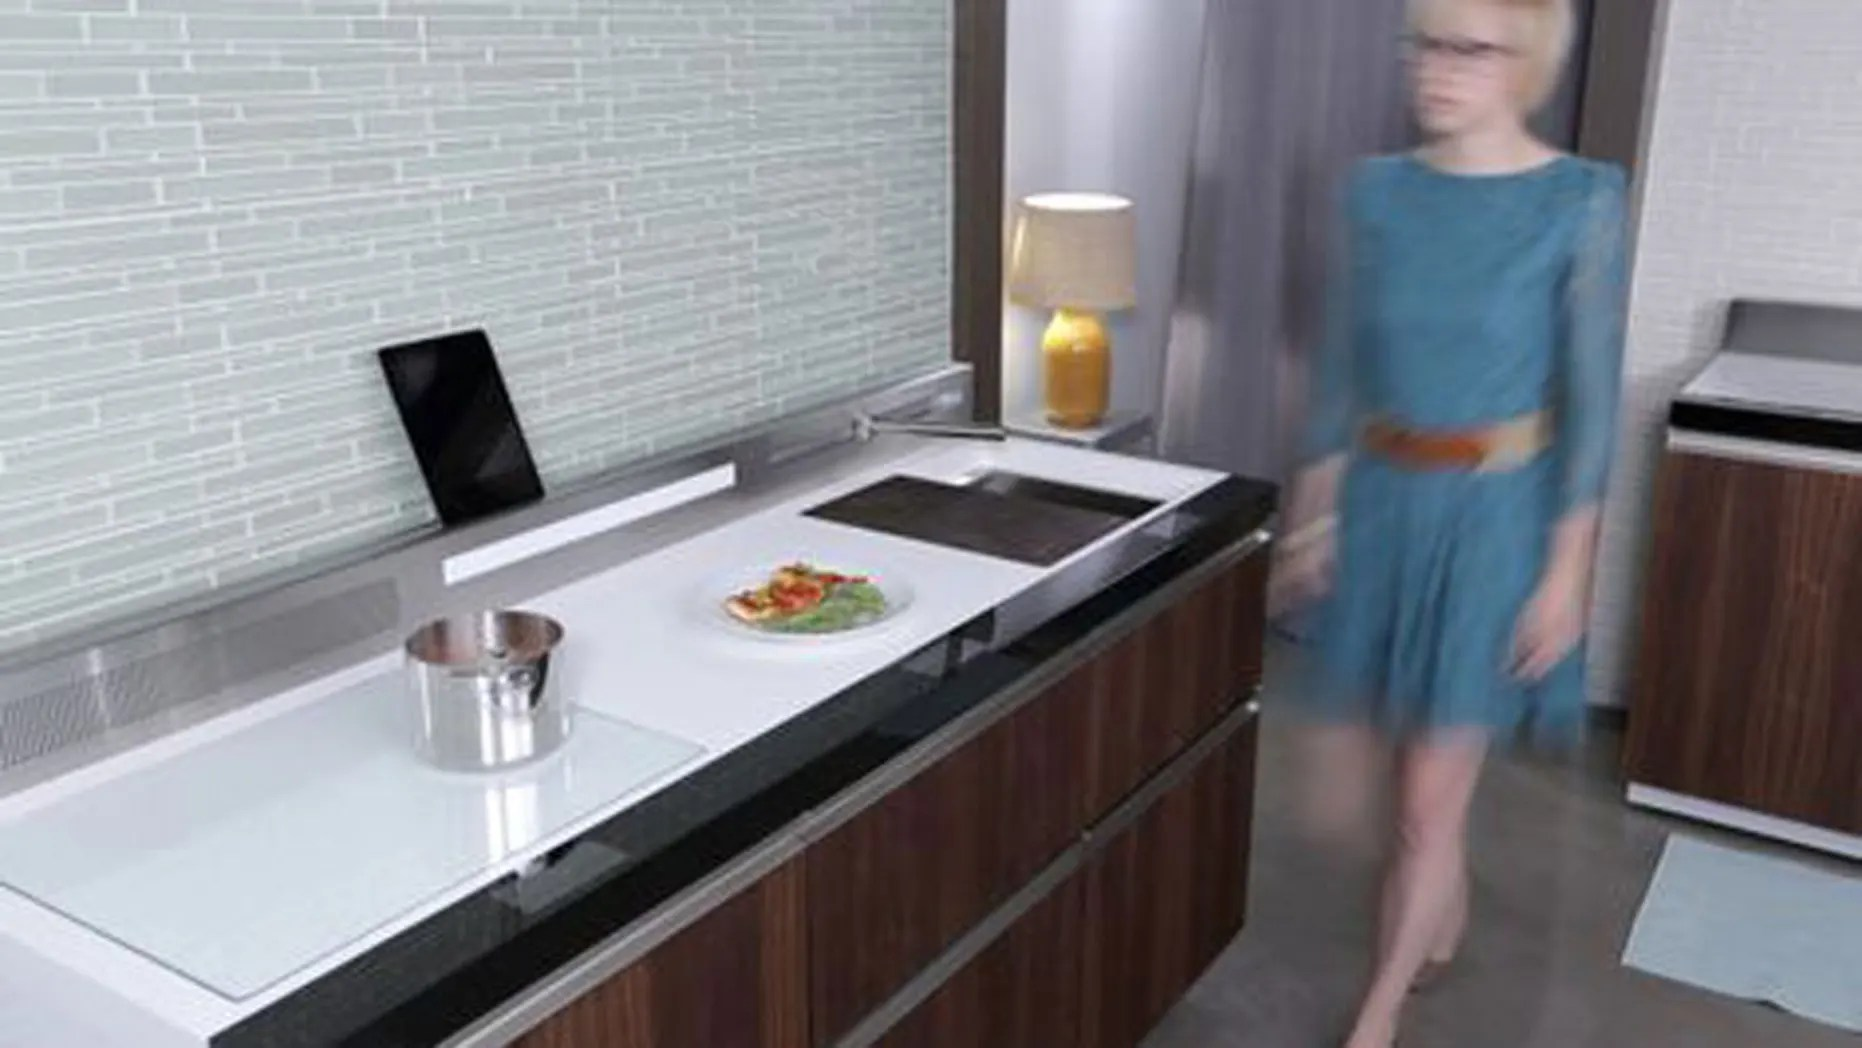 Innovative Kitchen Designs For Small Spaces Innovative Designs For Small Spaces Fox News